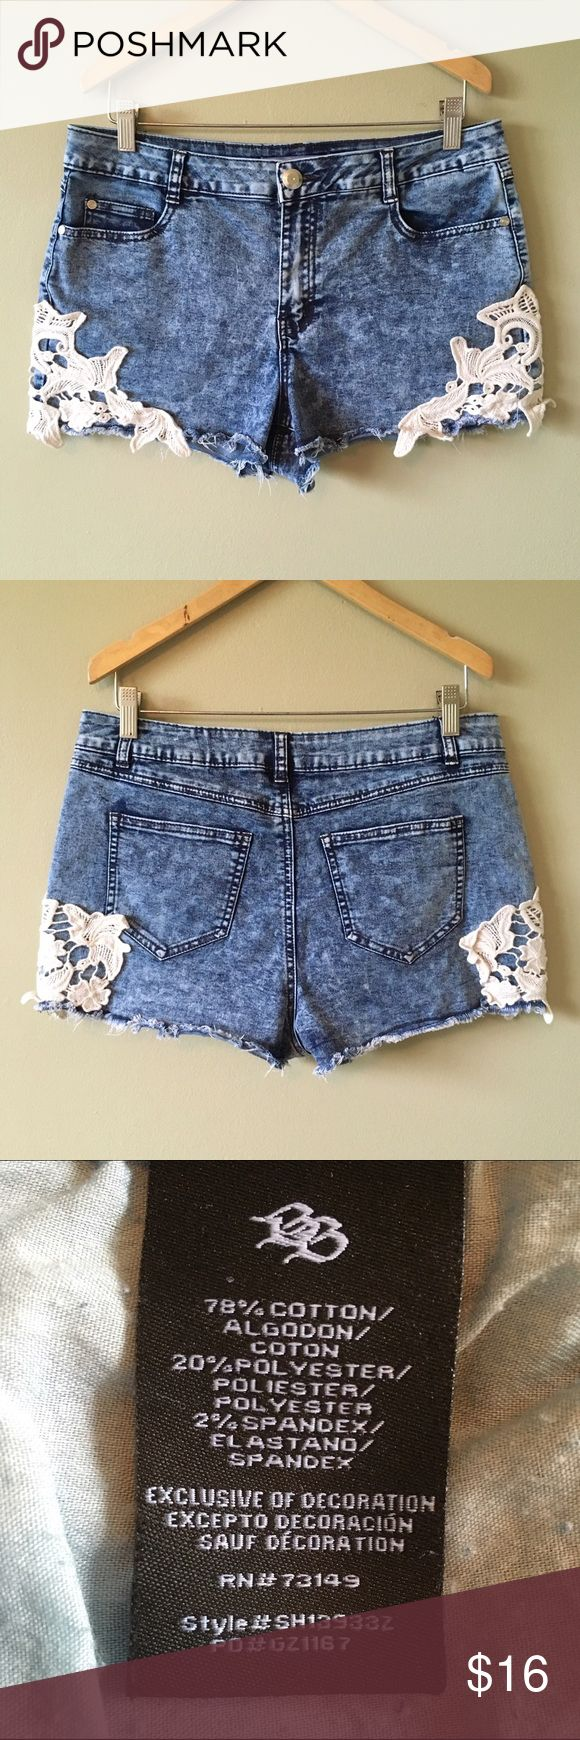 Cut-Off High-Waist Jean Shorts w/ White Lace Sides (Women's size 12/Juniors 13) Like new! Boho Short Acid-Wash Soft Stretch Cut-Off High-Waist Jean Shorts with Cream-White Lace Sides. Sexy and cute. I like the feel of the material. Only worn a couple times. Boom Boom Jeans Shorts Jean Shorts